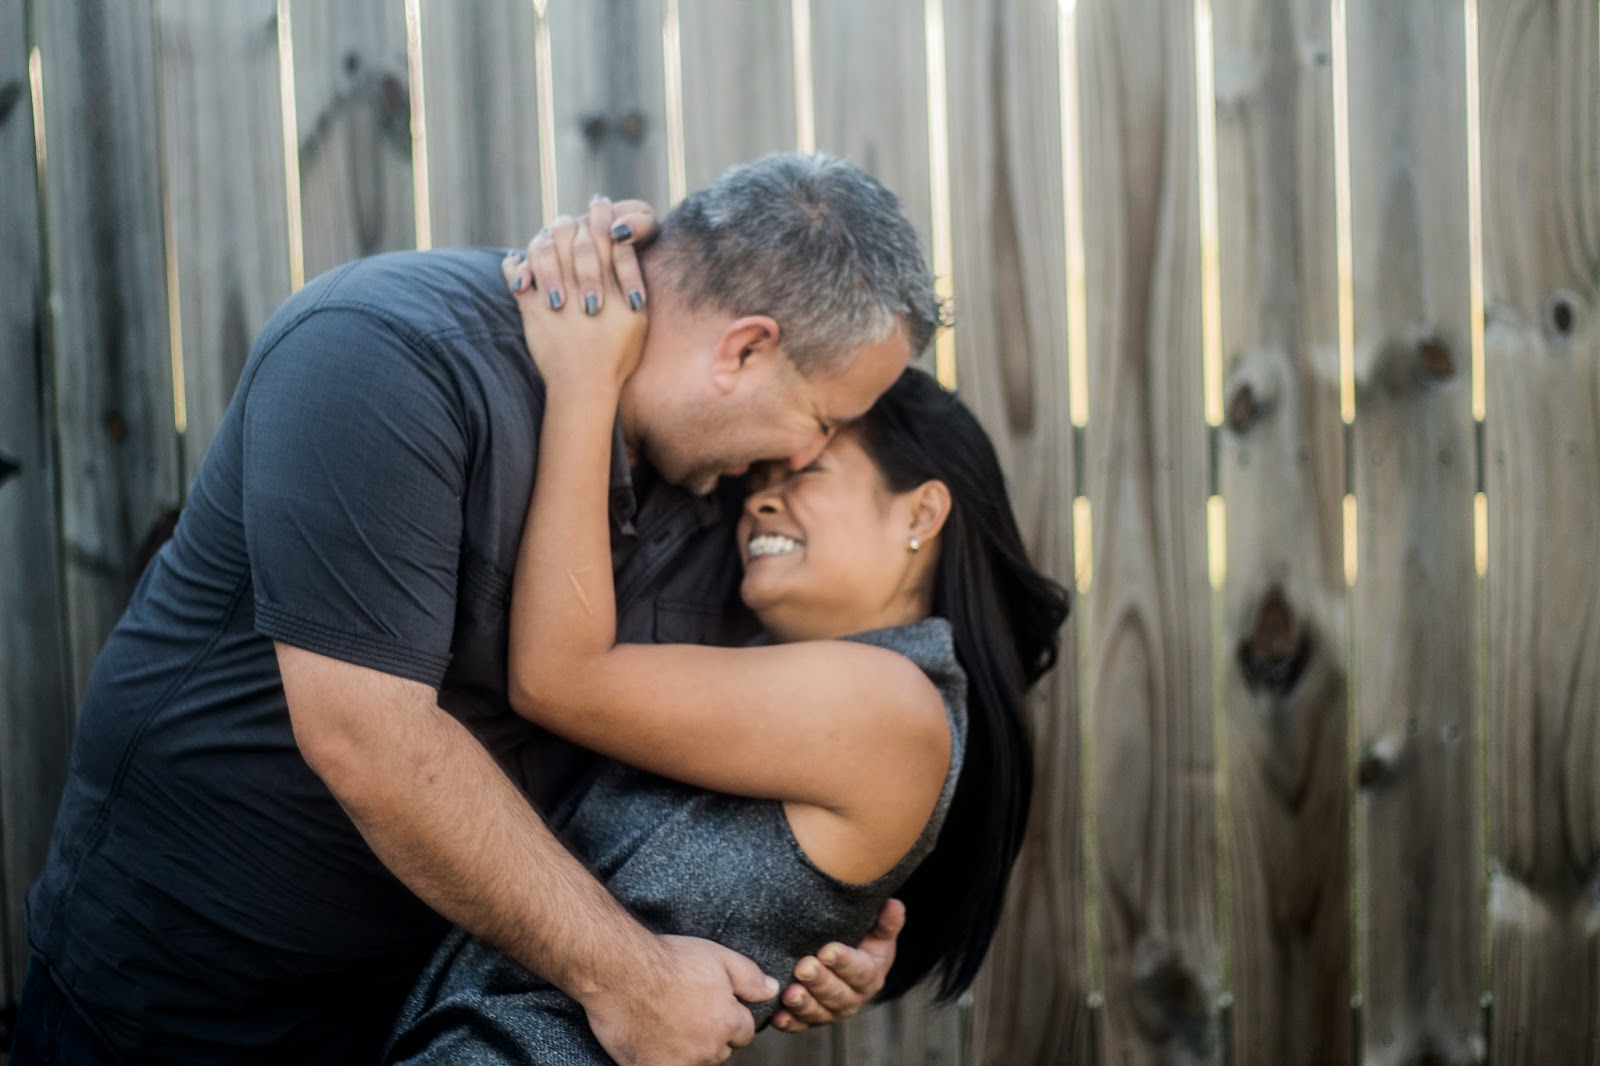 Justin Amy Our Family Engagement Session Greenville NC Photographer Bryant Tyson Photography 5